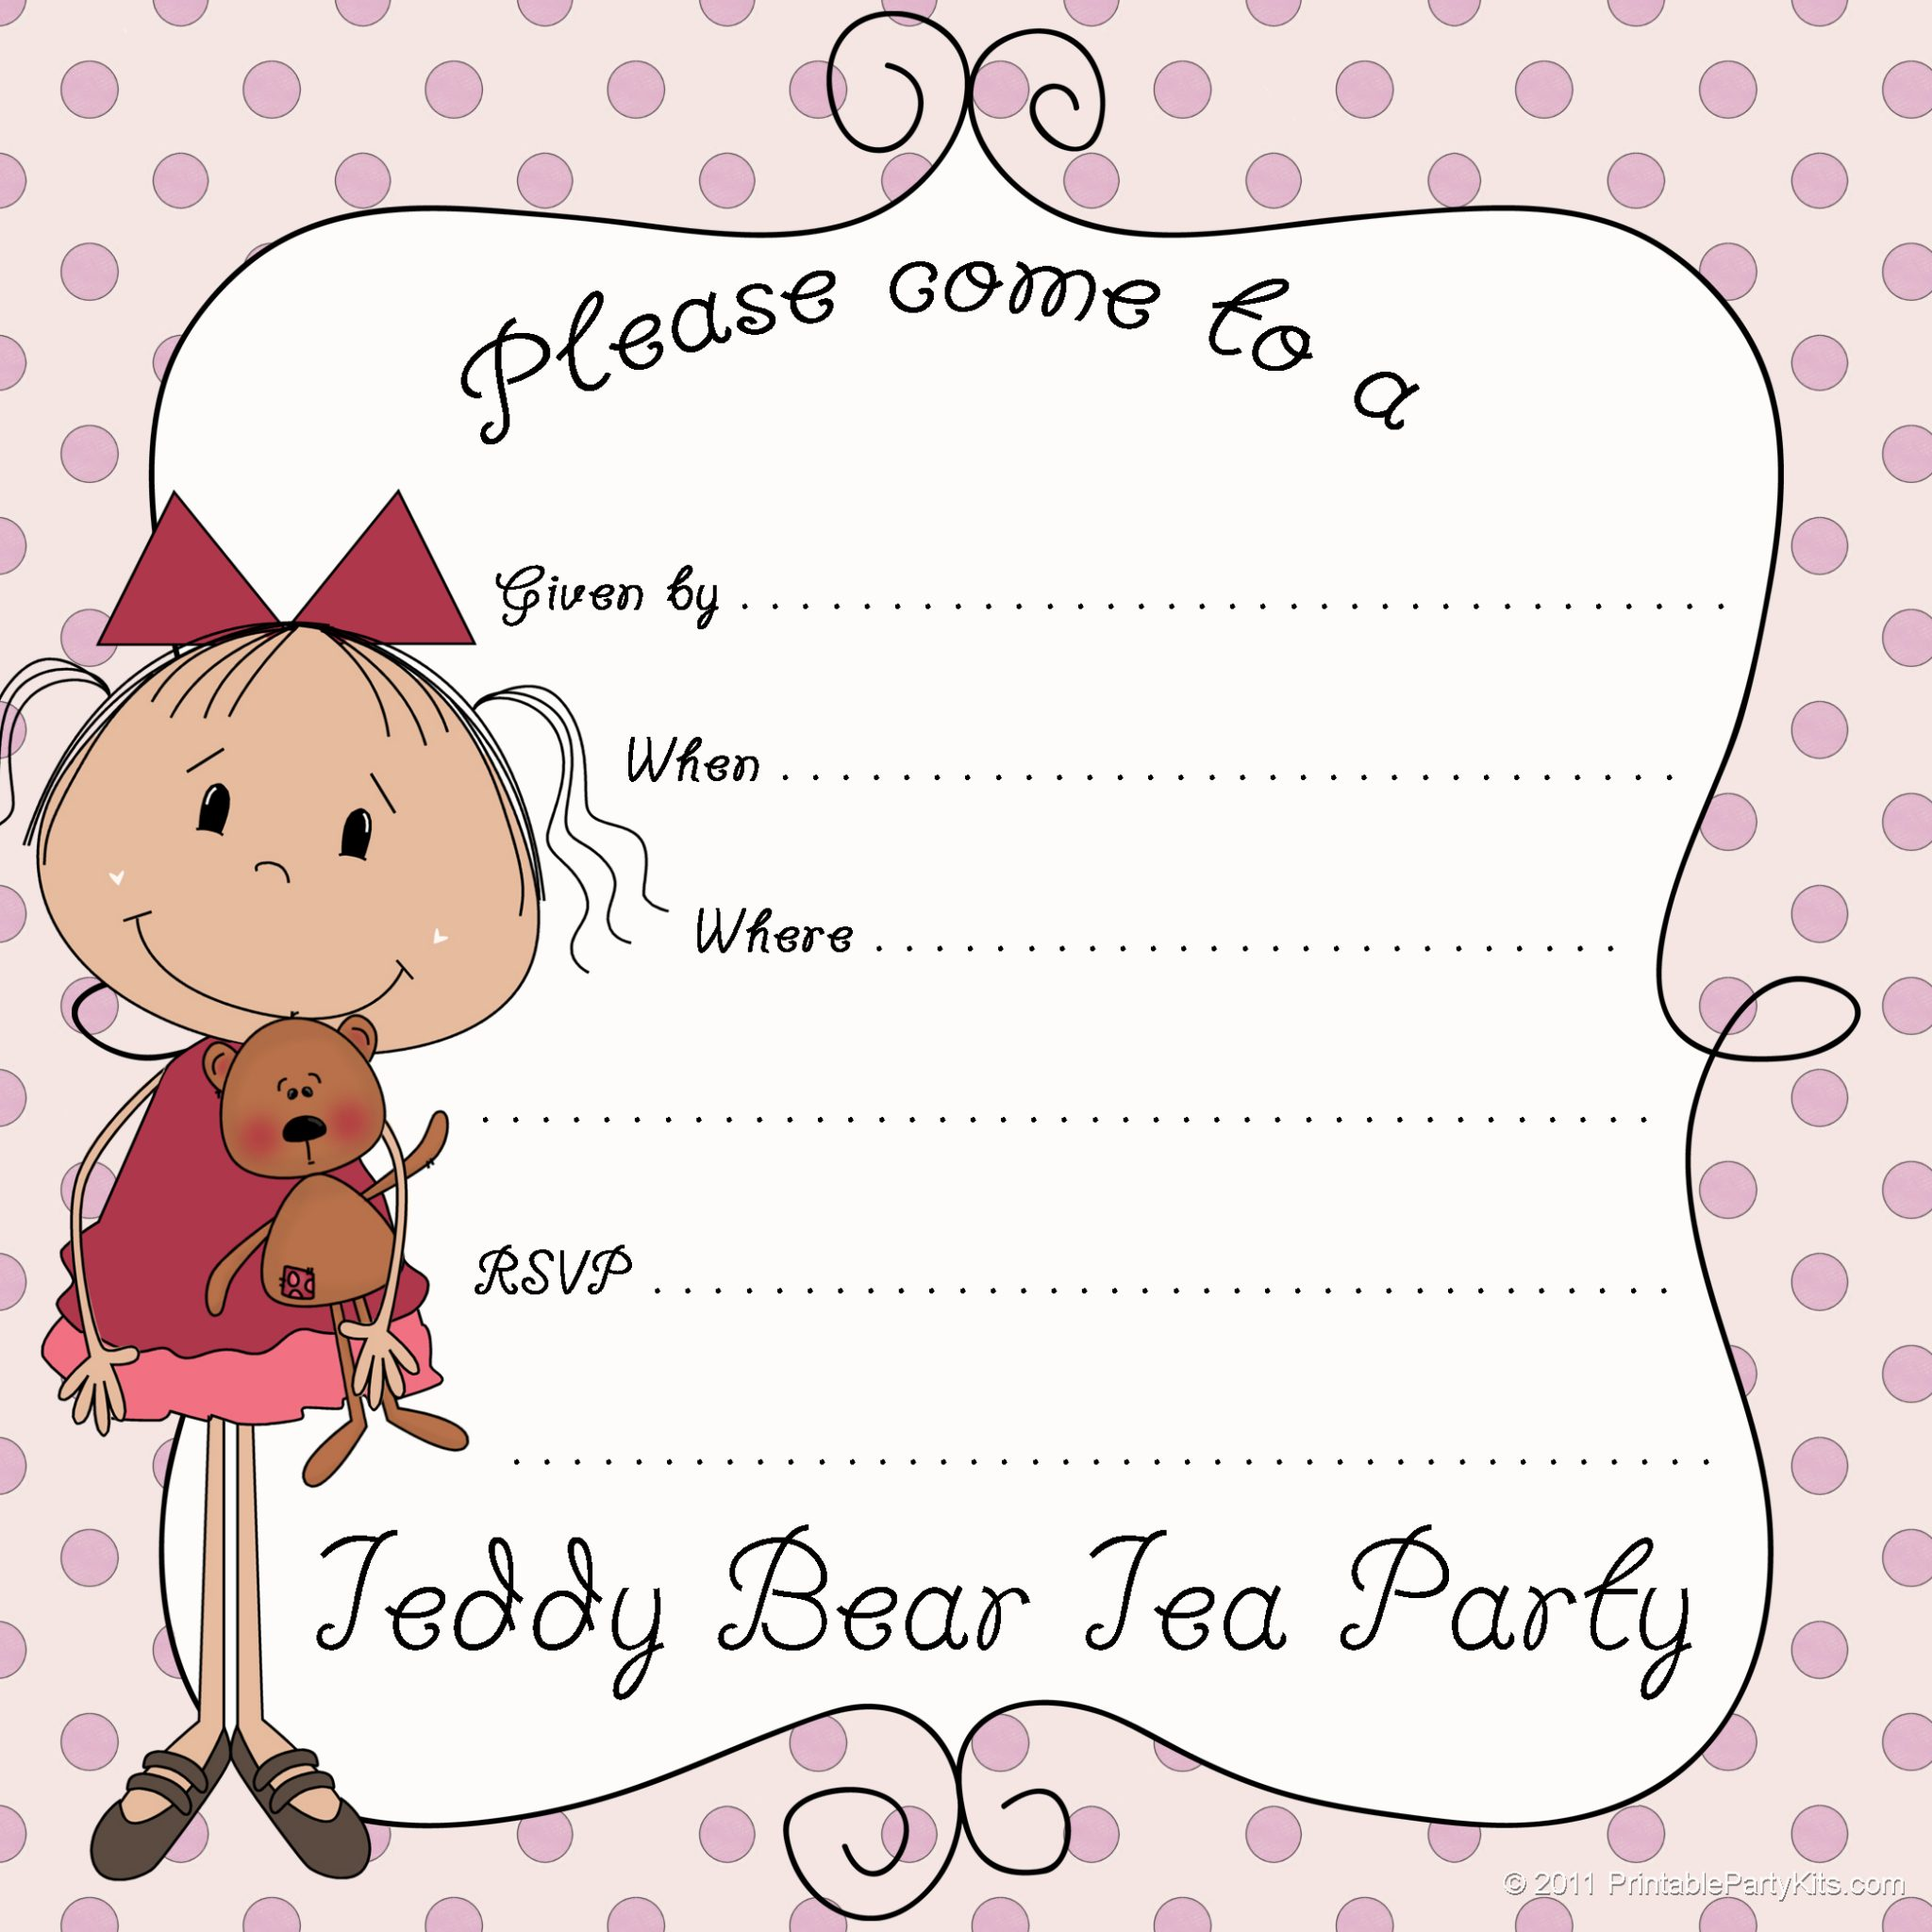 Free Printable Teddy Bear Tea Party Invitations | Printable Party Kits